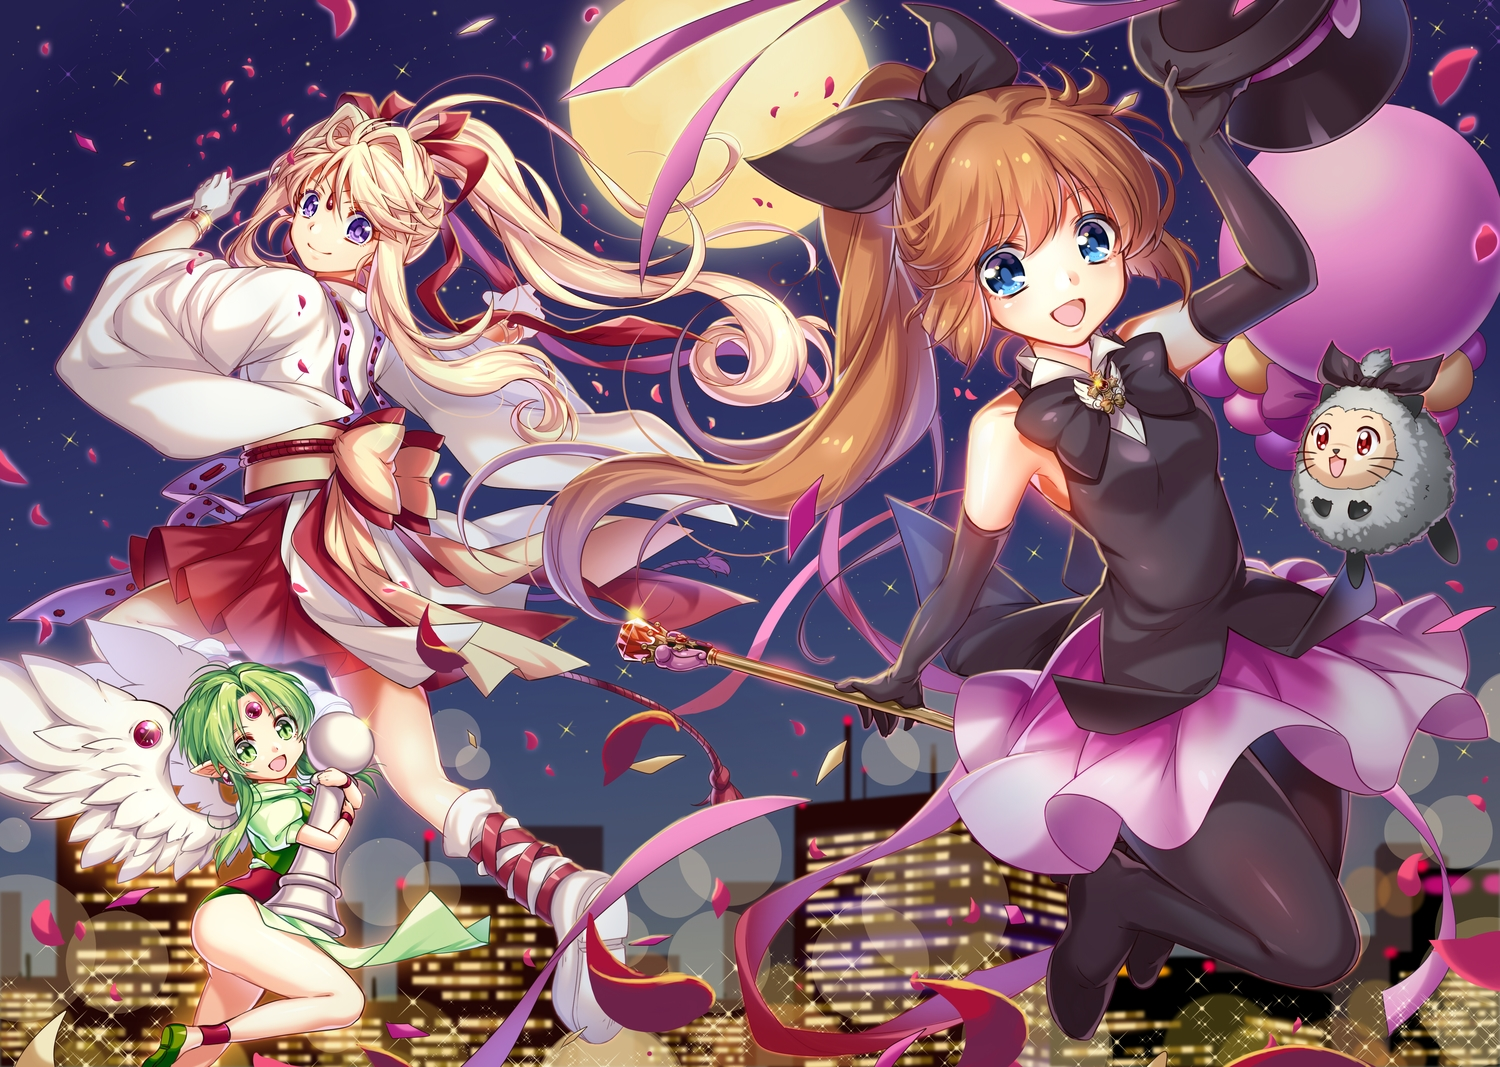 angel animal blonde_hair blue_eyes blue_hair building city elbow_gloves fairy finn_fish gloves green_eyes green_hair haneoka_meimi hat japanese_clothes kamikaze_kaitou_jeanne kusakabe_maron long_hair miko moon night petals pointed_ears ponytail purple_eyes ribbons takase_kou wings